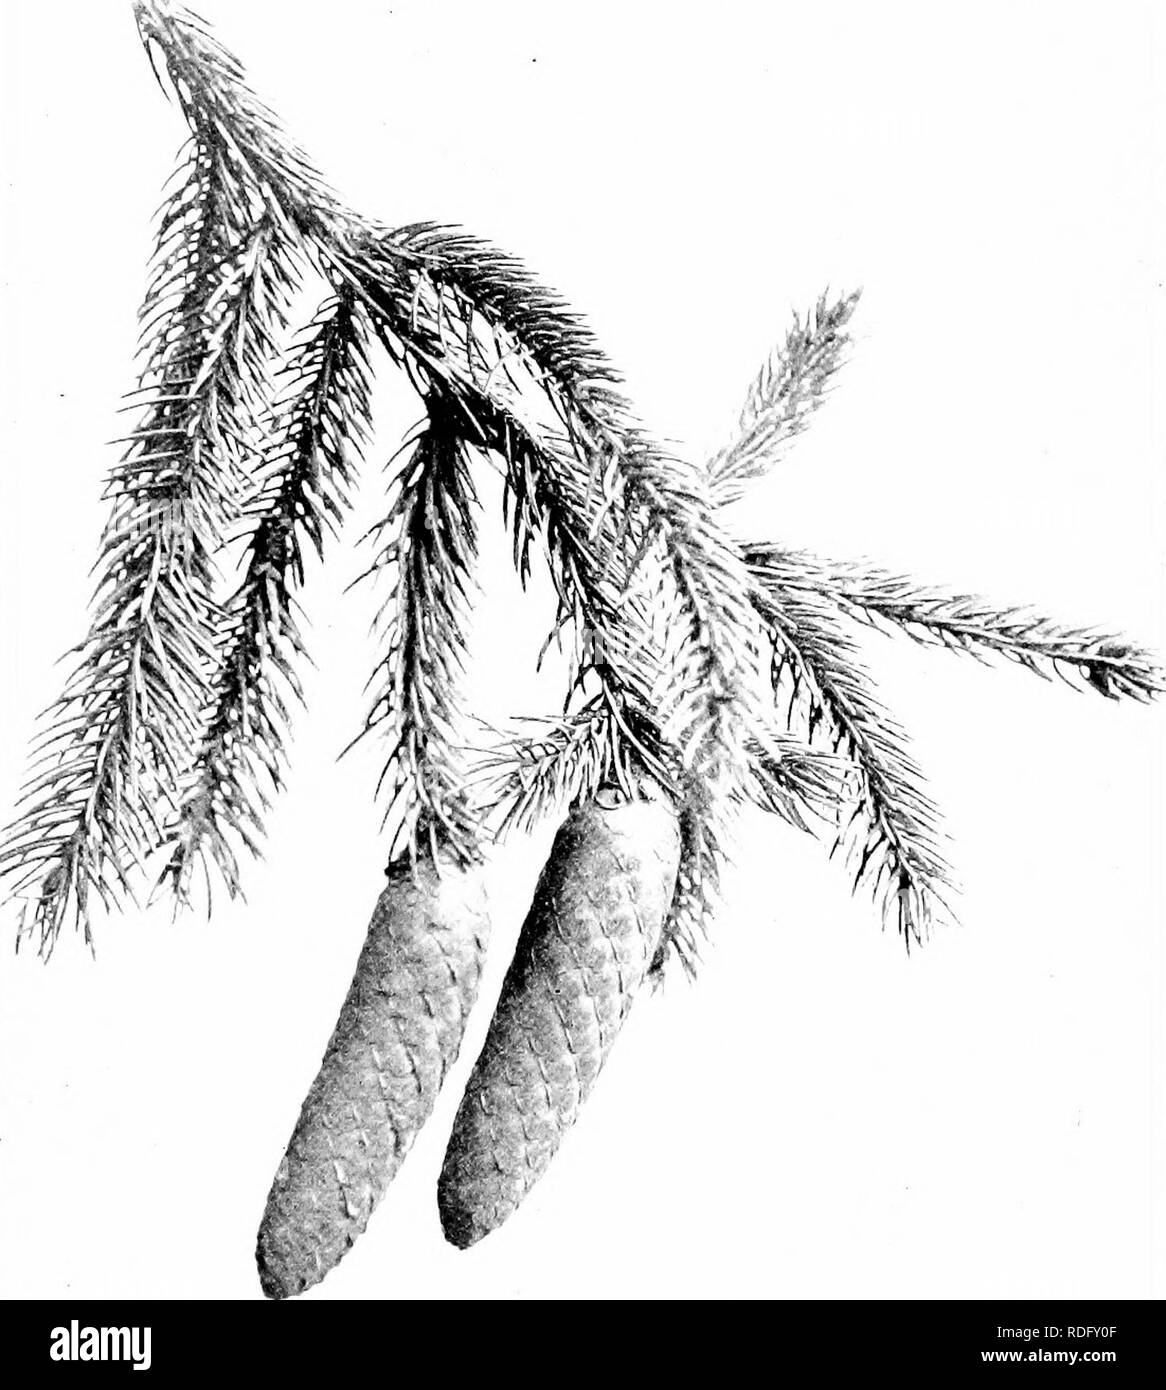 . Our native trees and how to identify them; a popular study of their habits and their peculiarities. Trees. NORWAY bFRUCE. Fruiting Spray of Norway Spruce, Picea excelsa. Cones 4' to 6' long.. Please note that these images are extracted from scanned page images that may have been digitally enhanced for readability - coloration and appearance of these illustrations may not perfectly resemble the original work.. Keeler, Harriet L. (Harriet Louise), 1846-1921. New York, C. Scribner's Sons - Stock Image